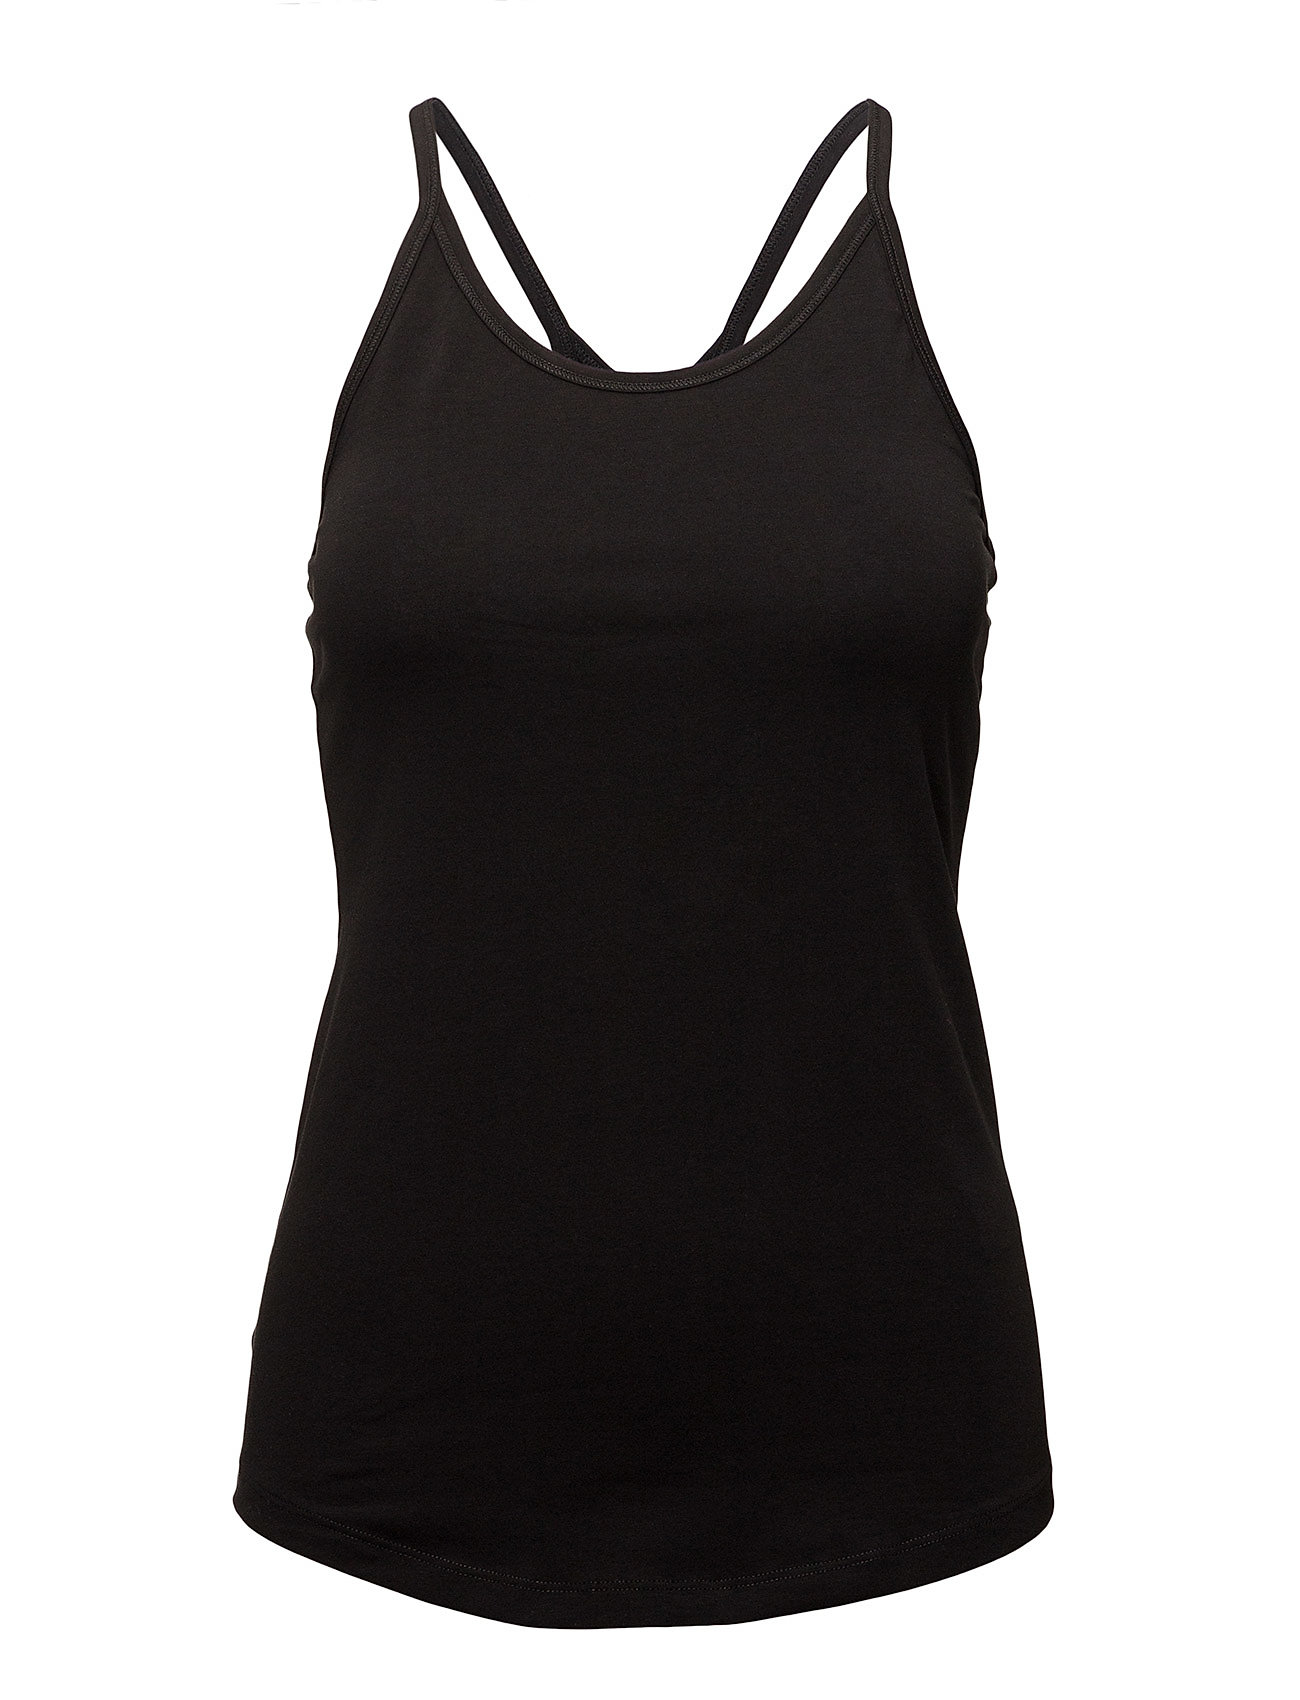 Filippa K Soft Sport Cotton Strap Tank